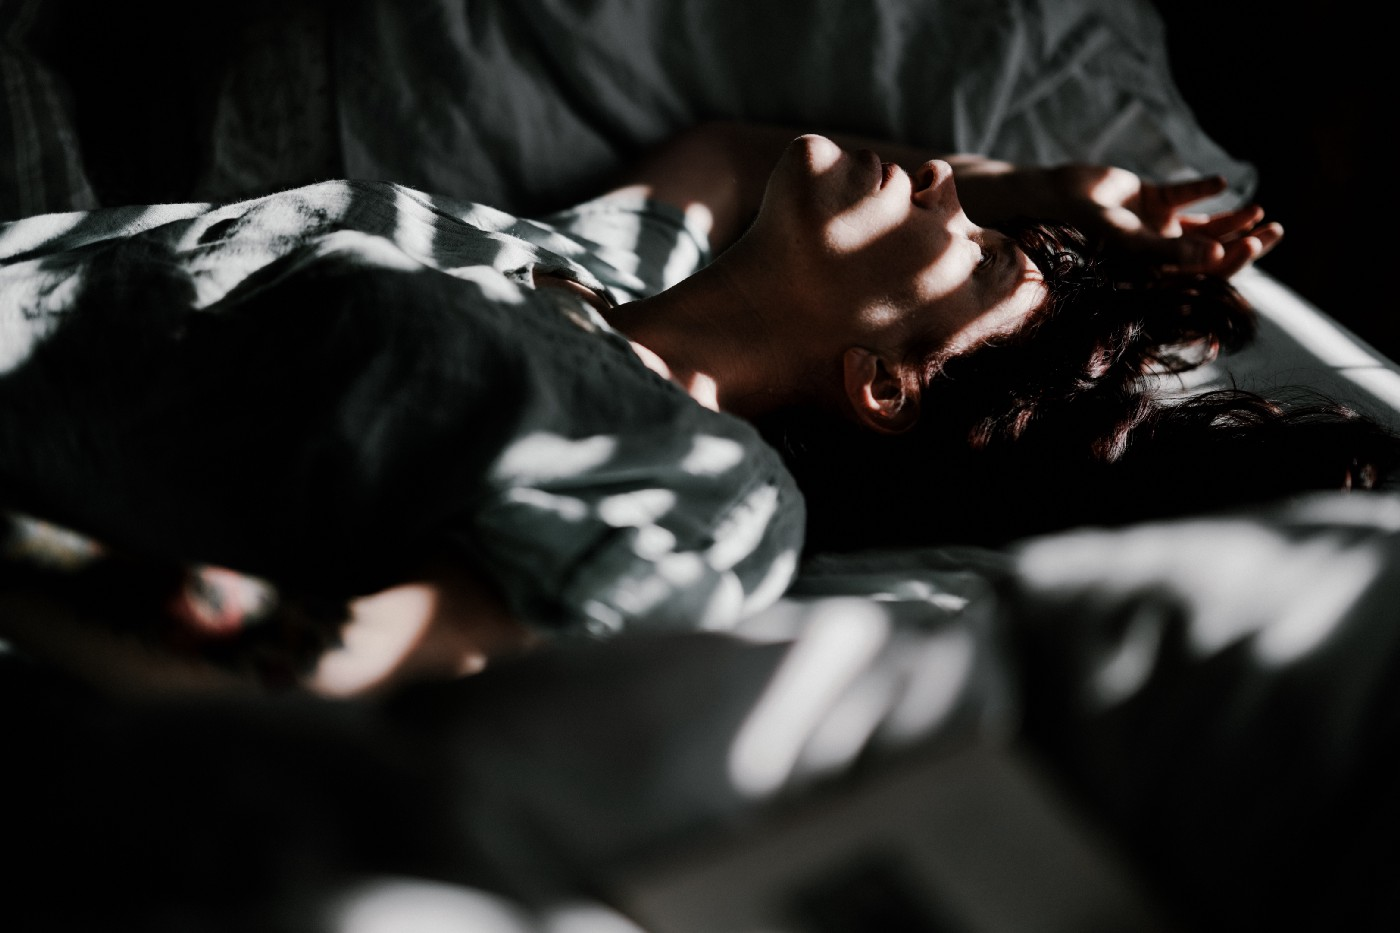 A young woman is sleeping on a bed with the sun filtering through the blinds on her window